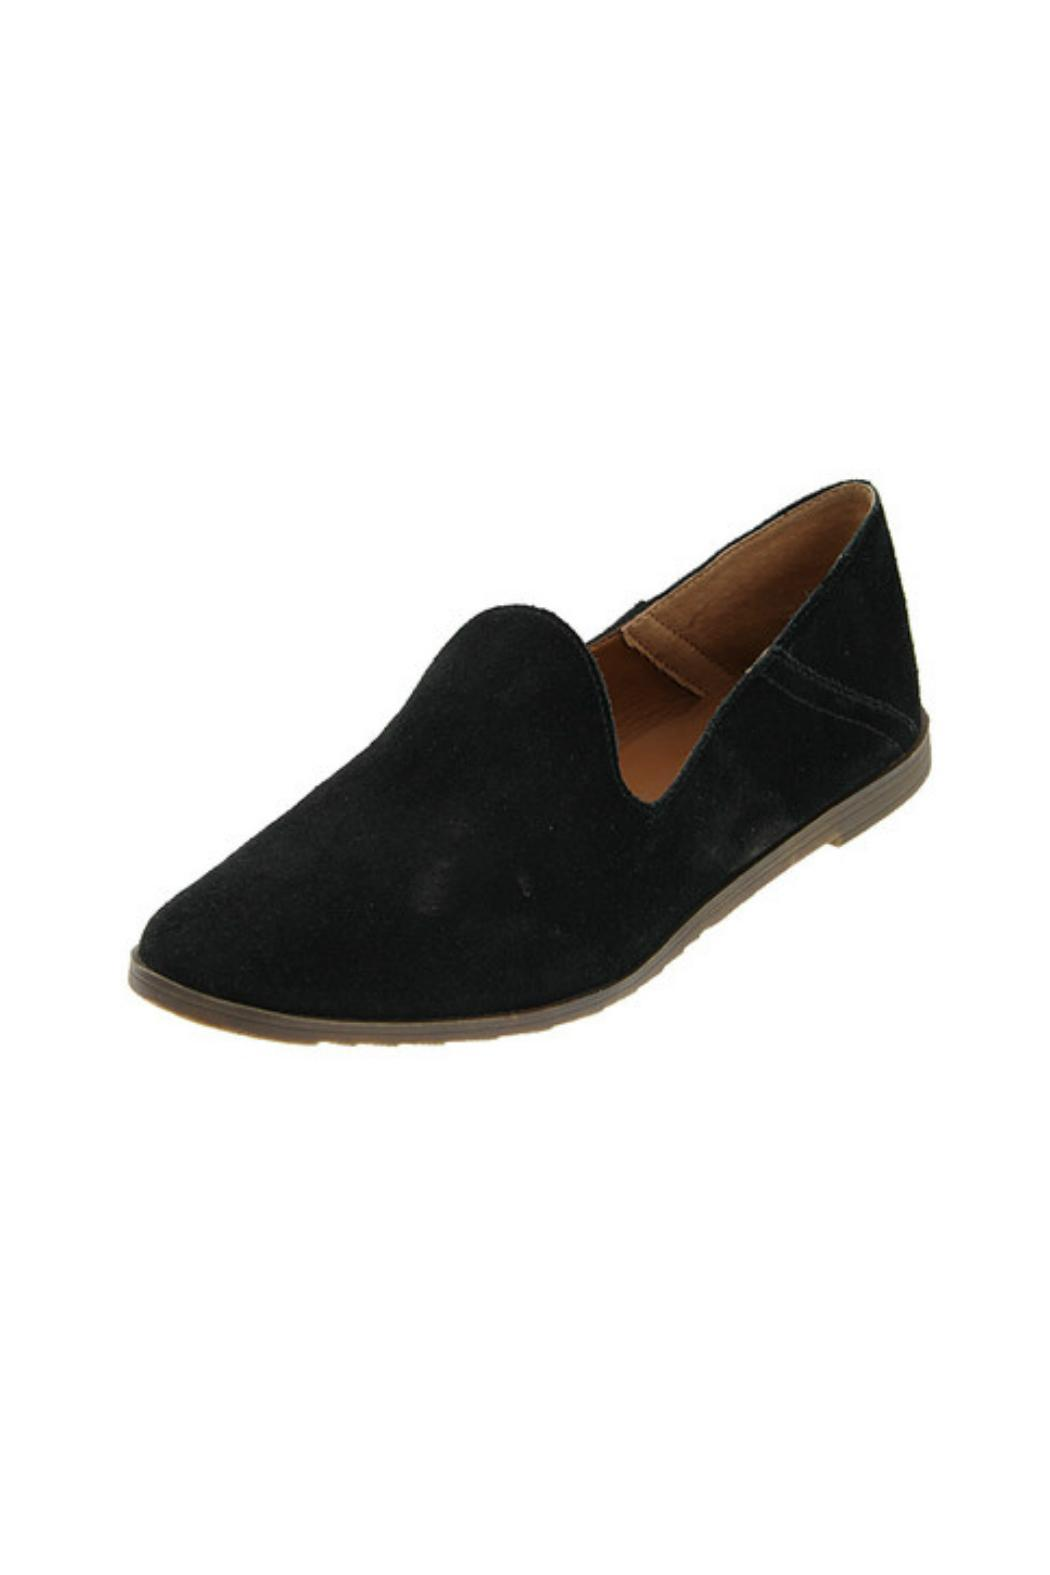 c6257a43c35 Franco Sarto Freeze Slip-On Loafer from Branford by Shoetique ...